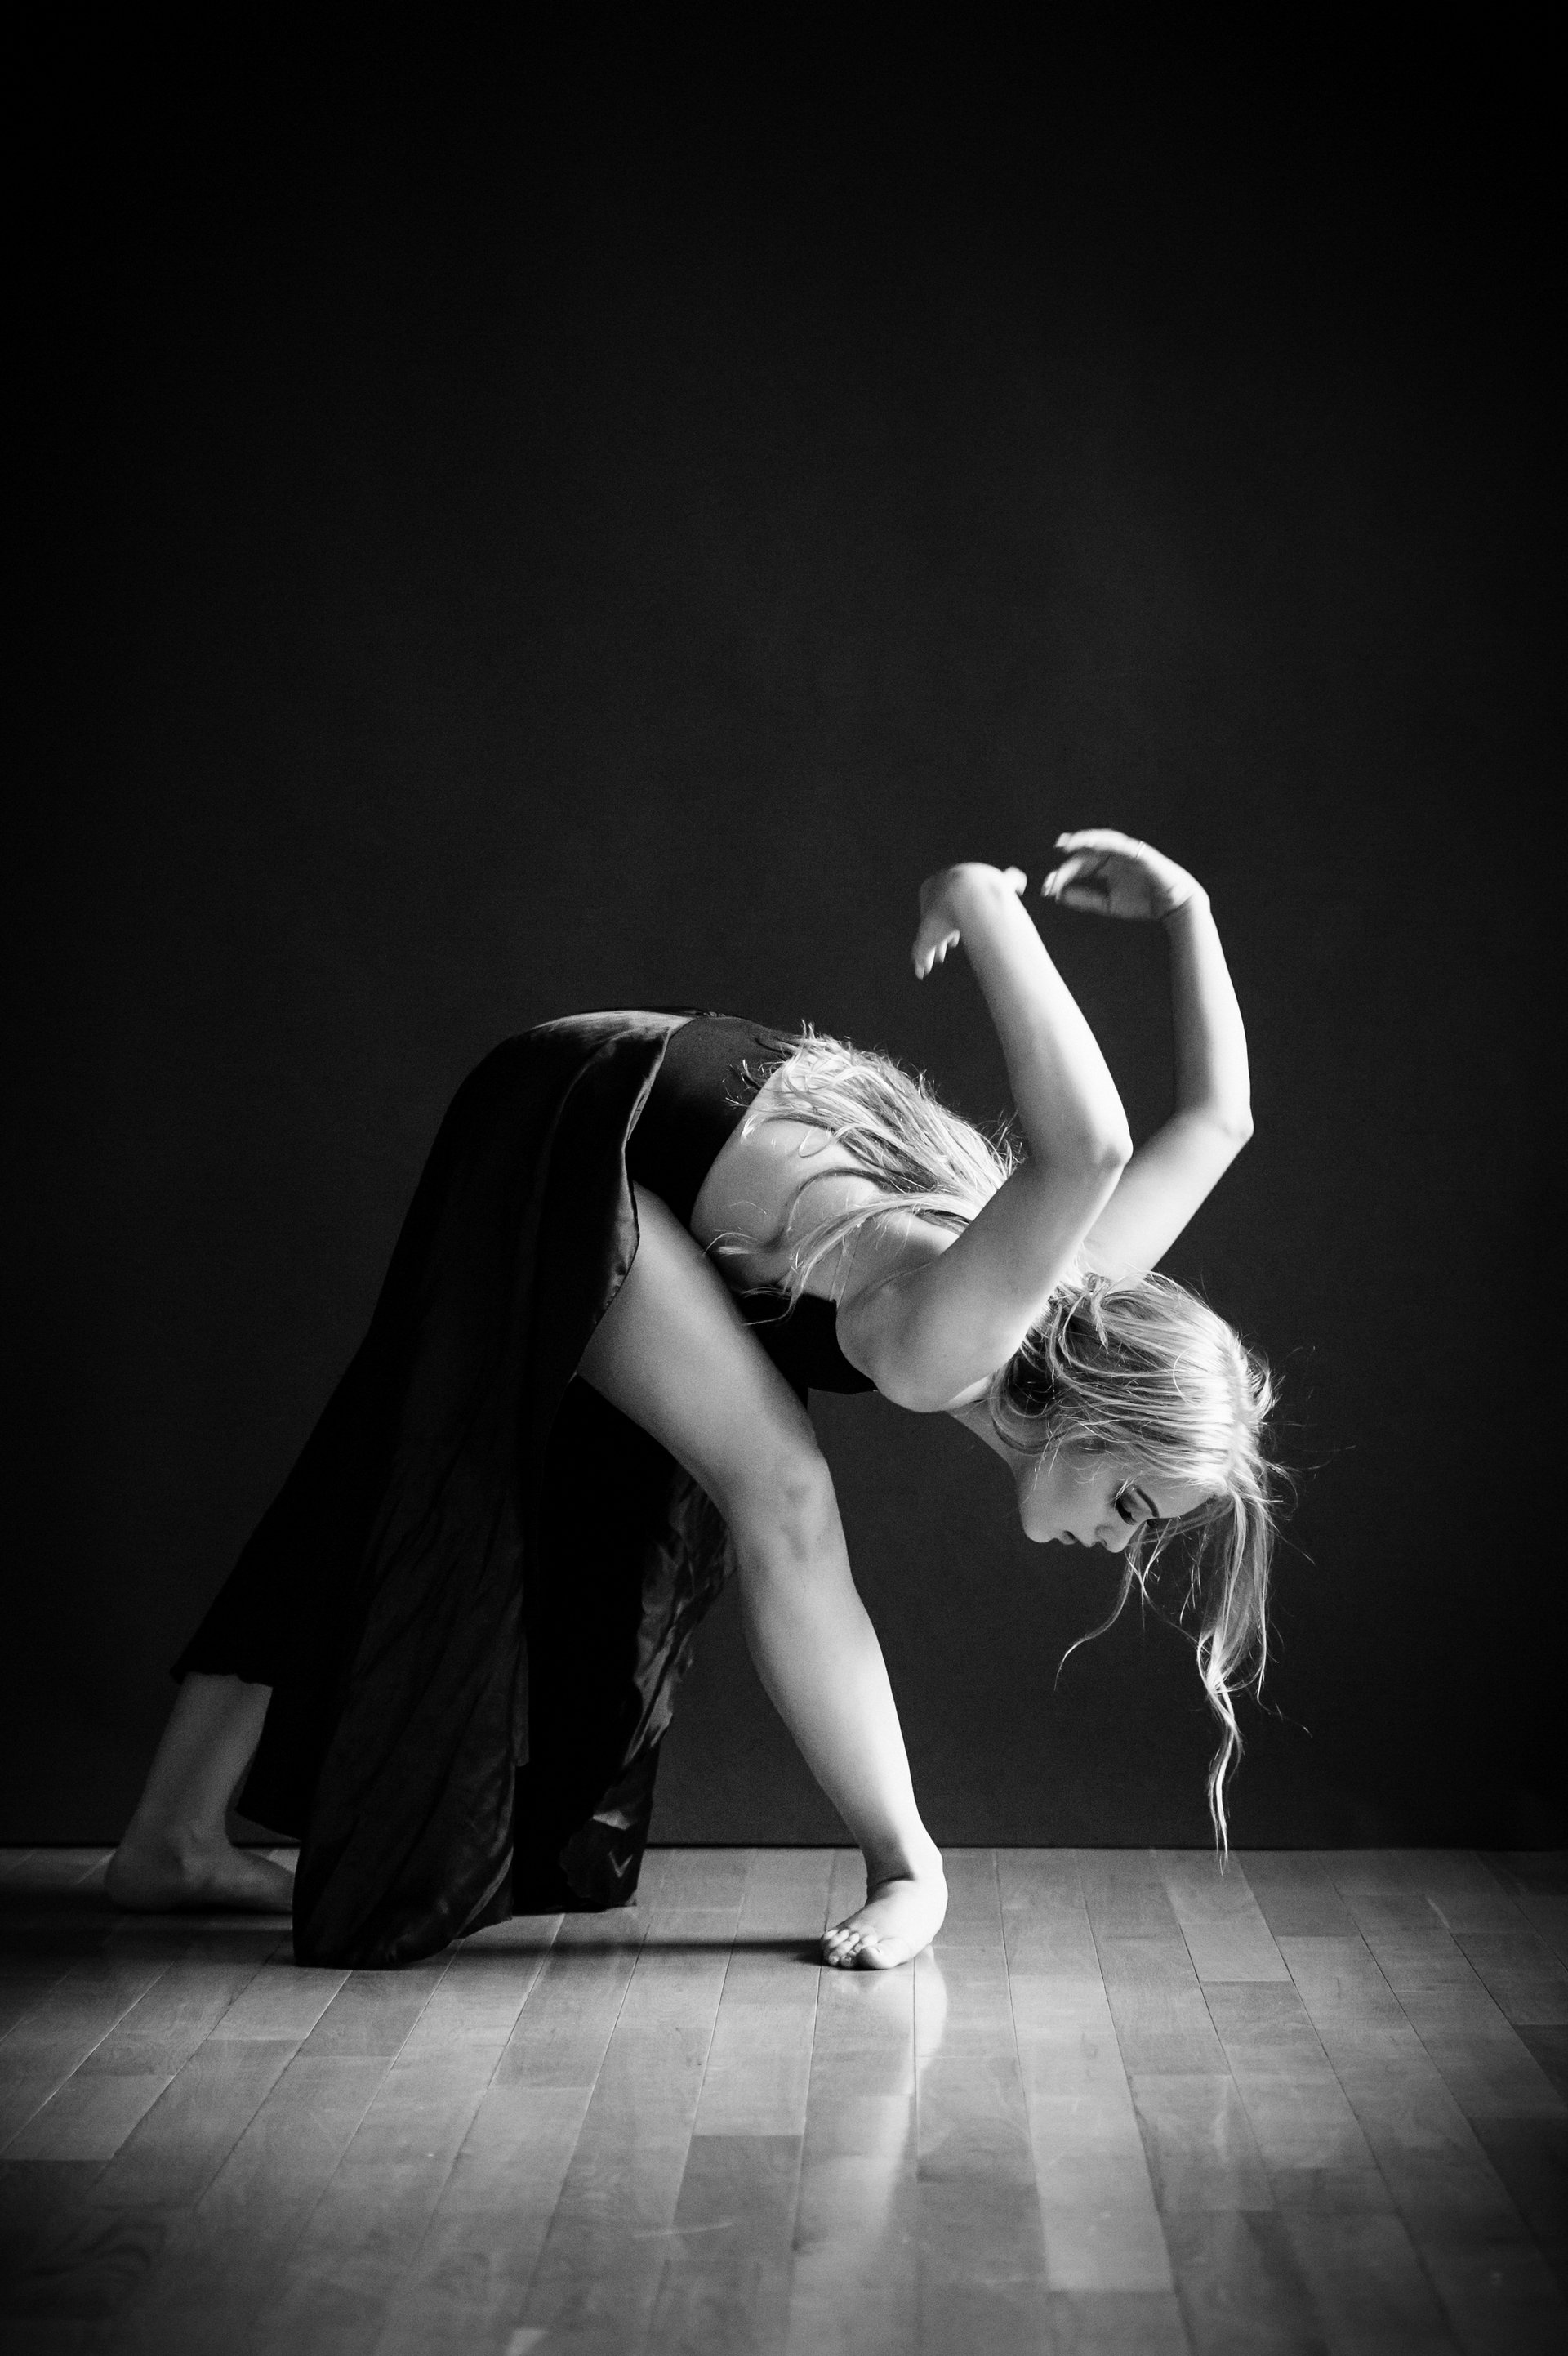 nEO_IMG_Xing Photography Soul of Dance - Haley-72-BW.jpg